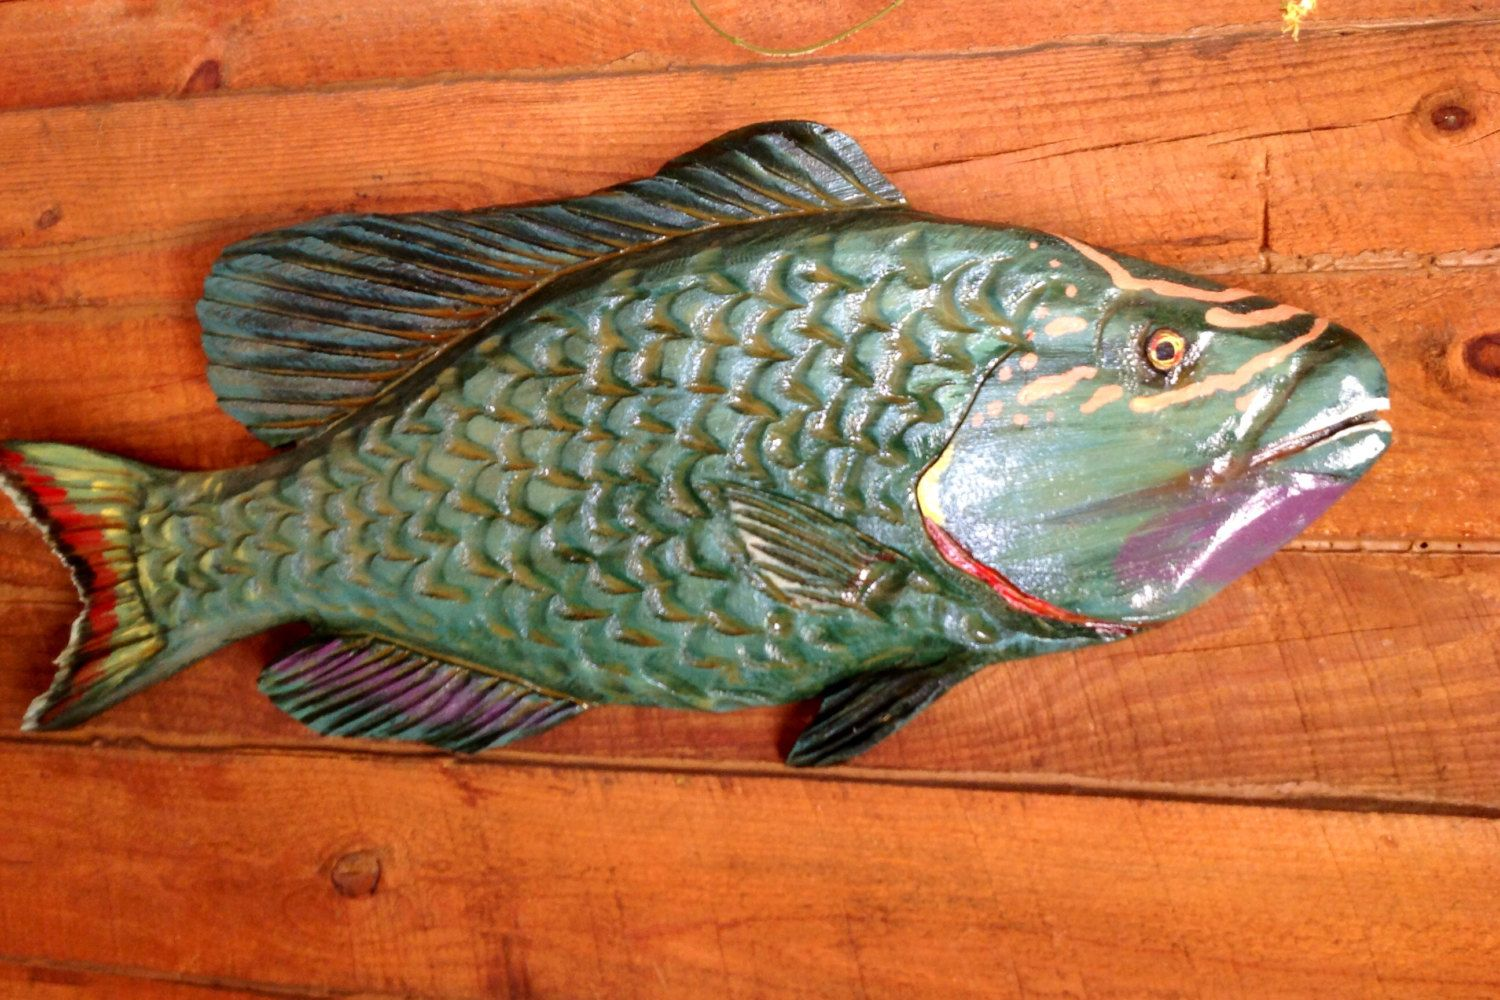 Parrotfish carving 36 wooden fish wall mount tropical decor beach bungalow chainsaw art exotic colorful